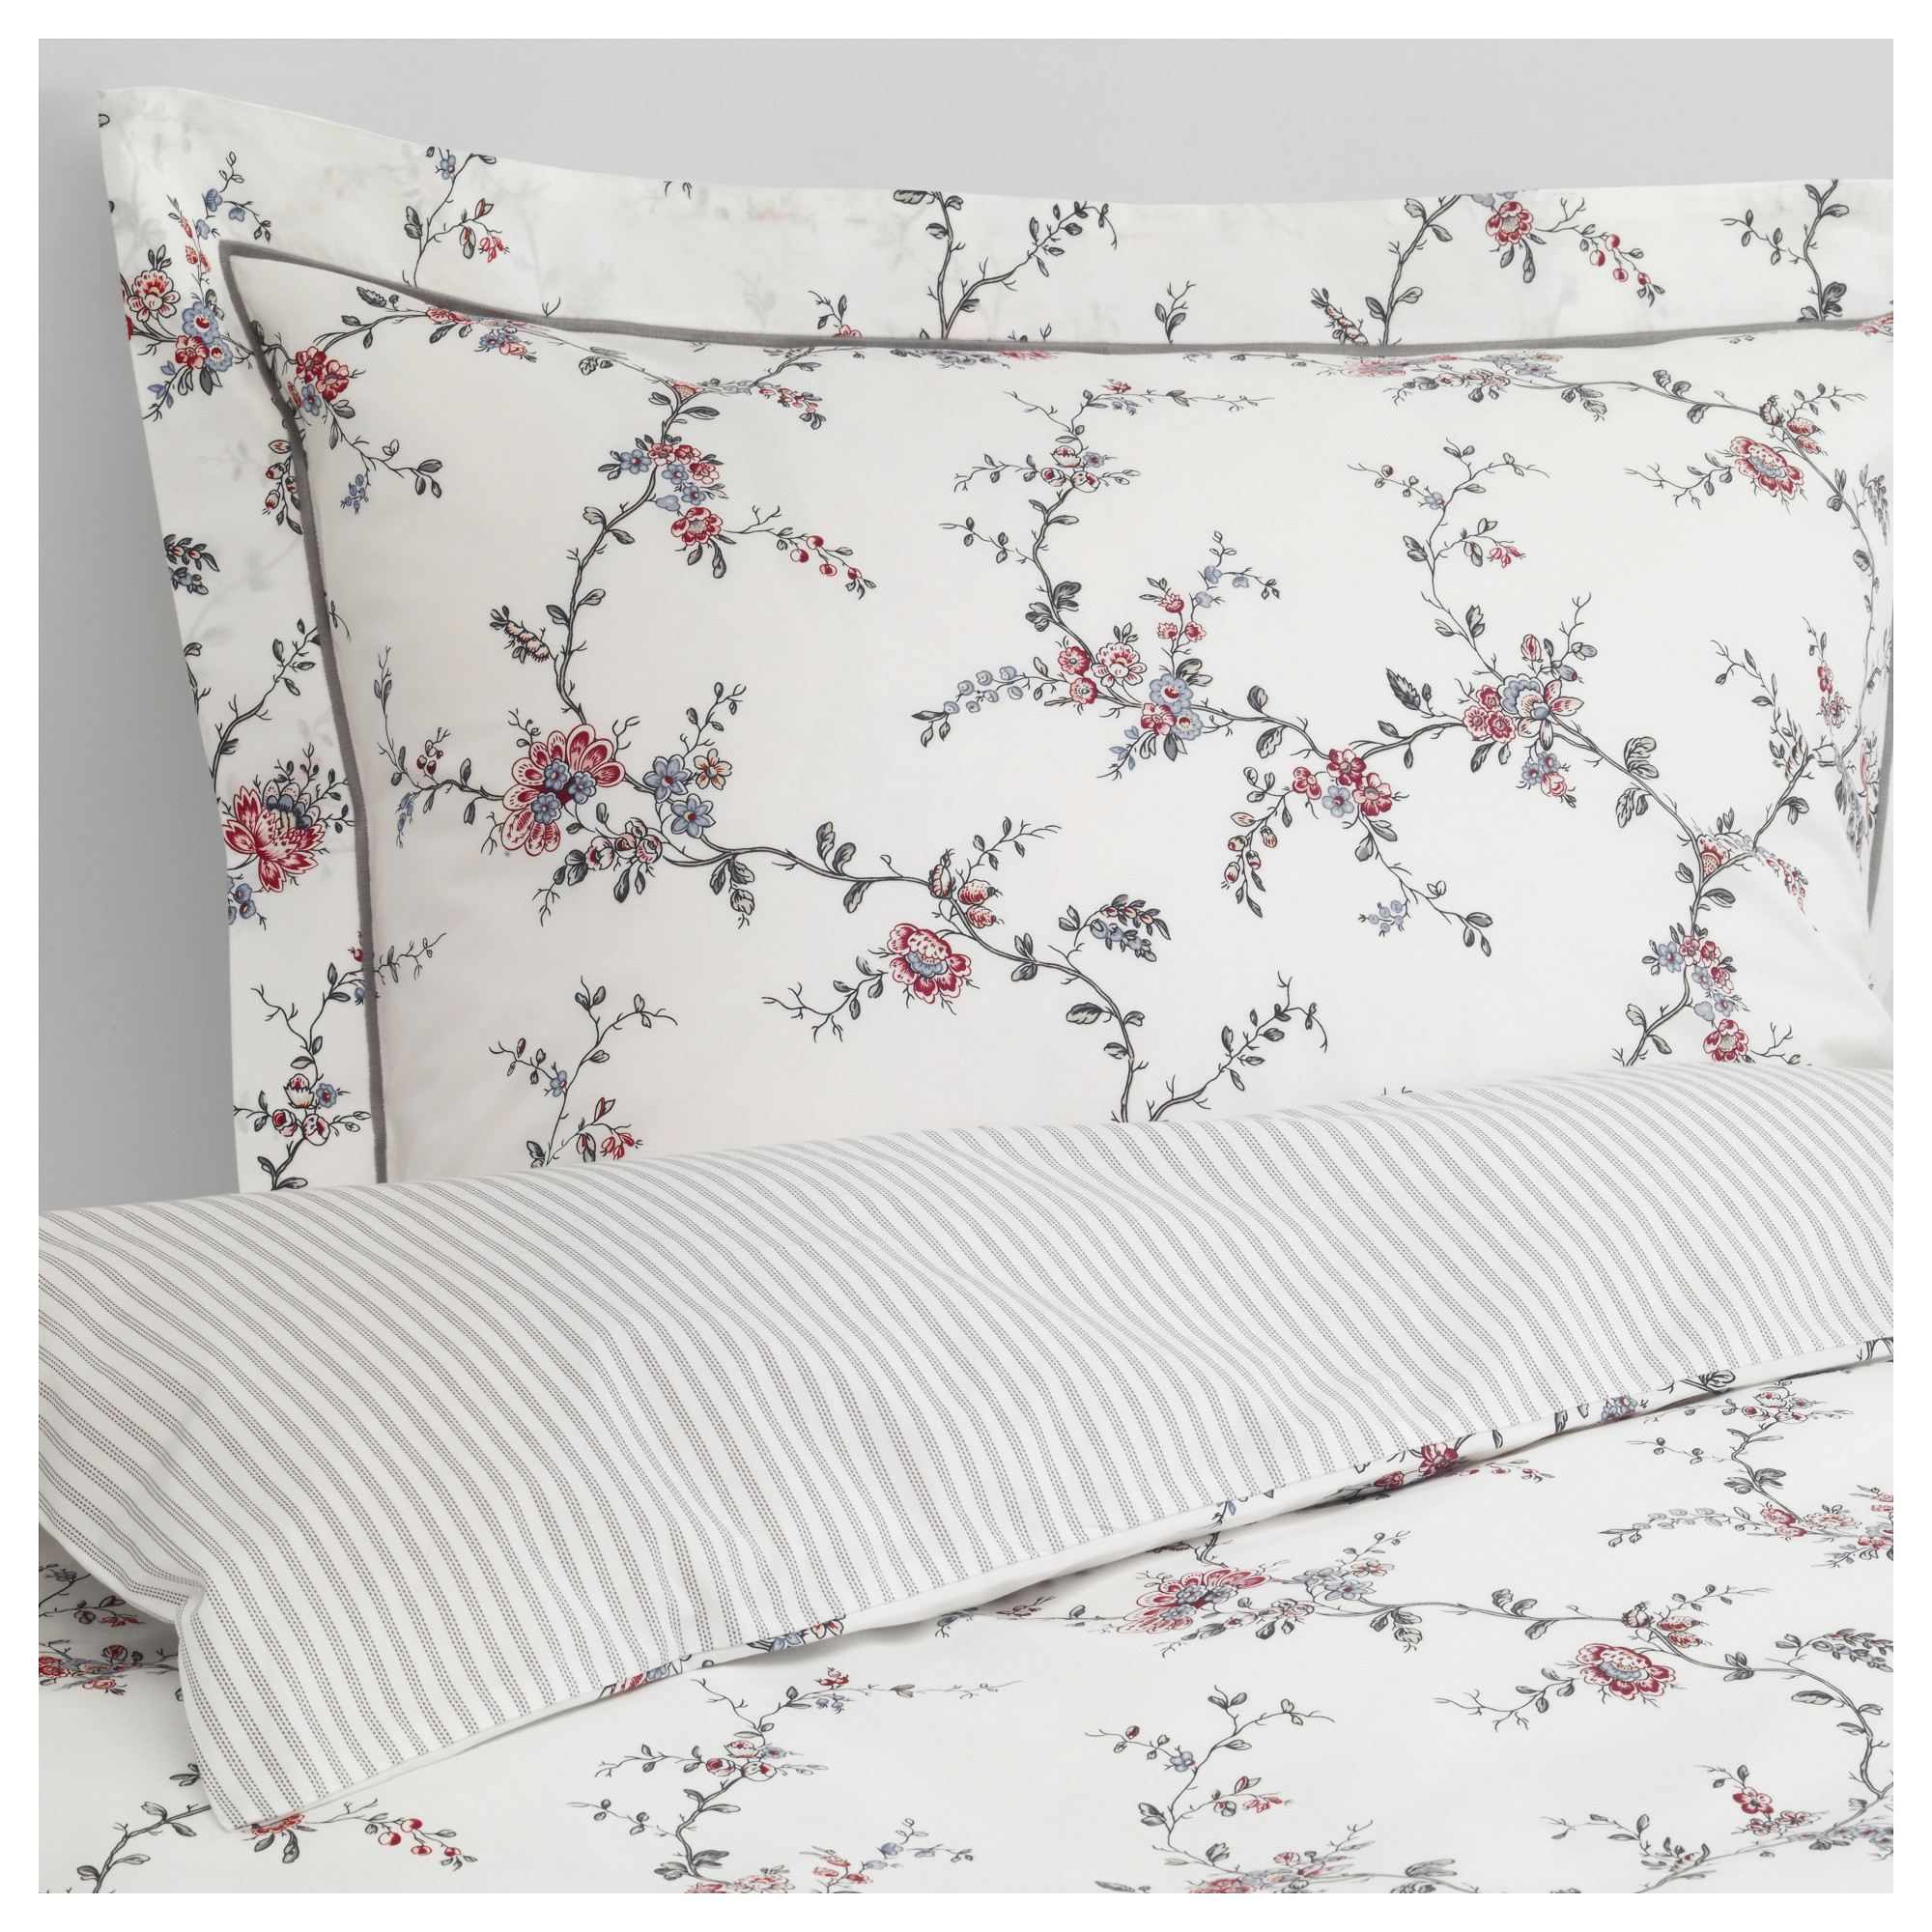 STEN–RT Quilt cover and 2 pillowcases 240x220 50x80 cm IKEA